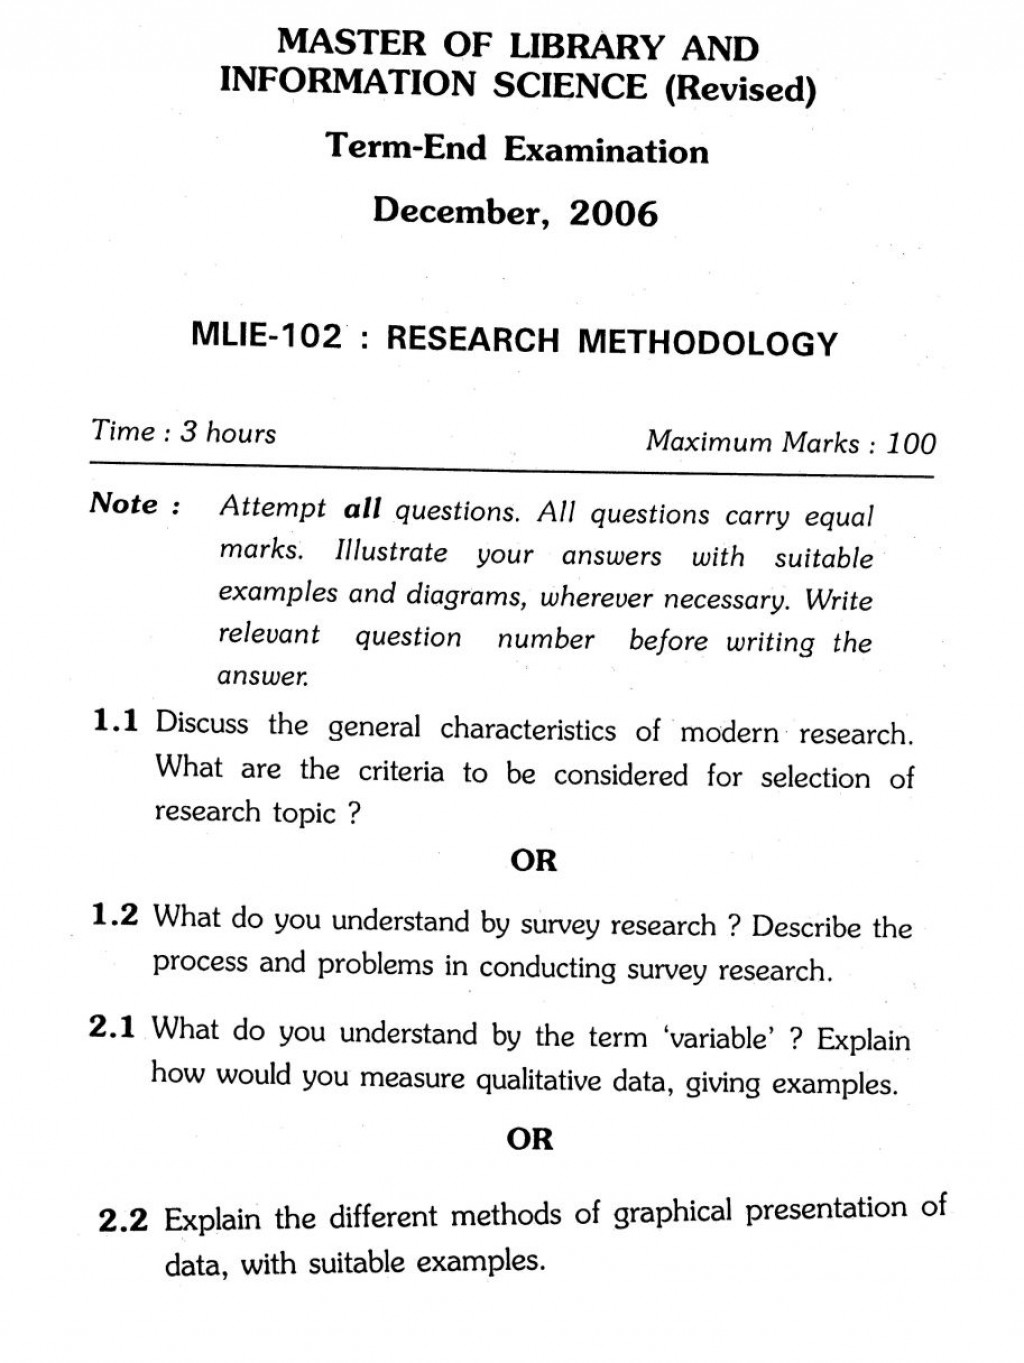 012 Research Paper Methodology Ignou Master Of Library And Information Science Previous Years Question Papers Awful On Teaching Pdf Types Example Large